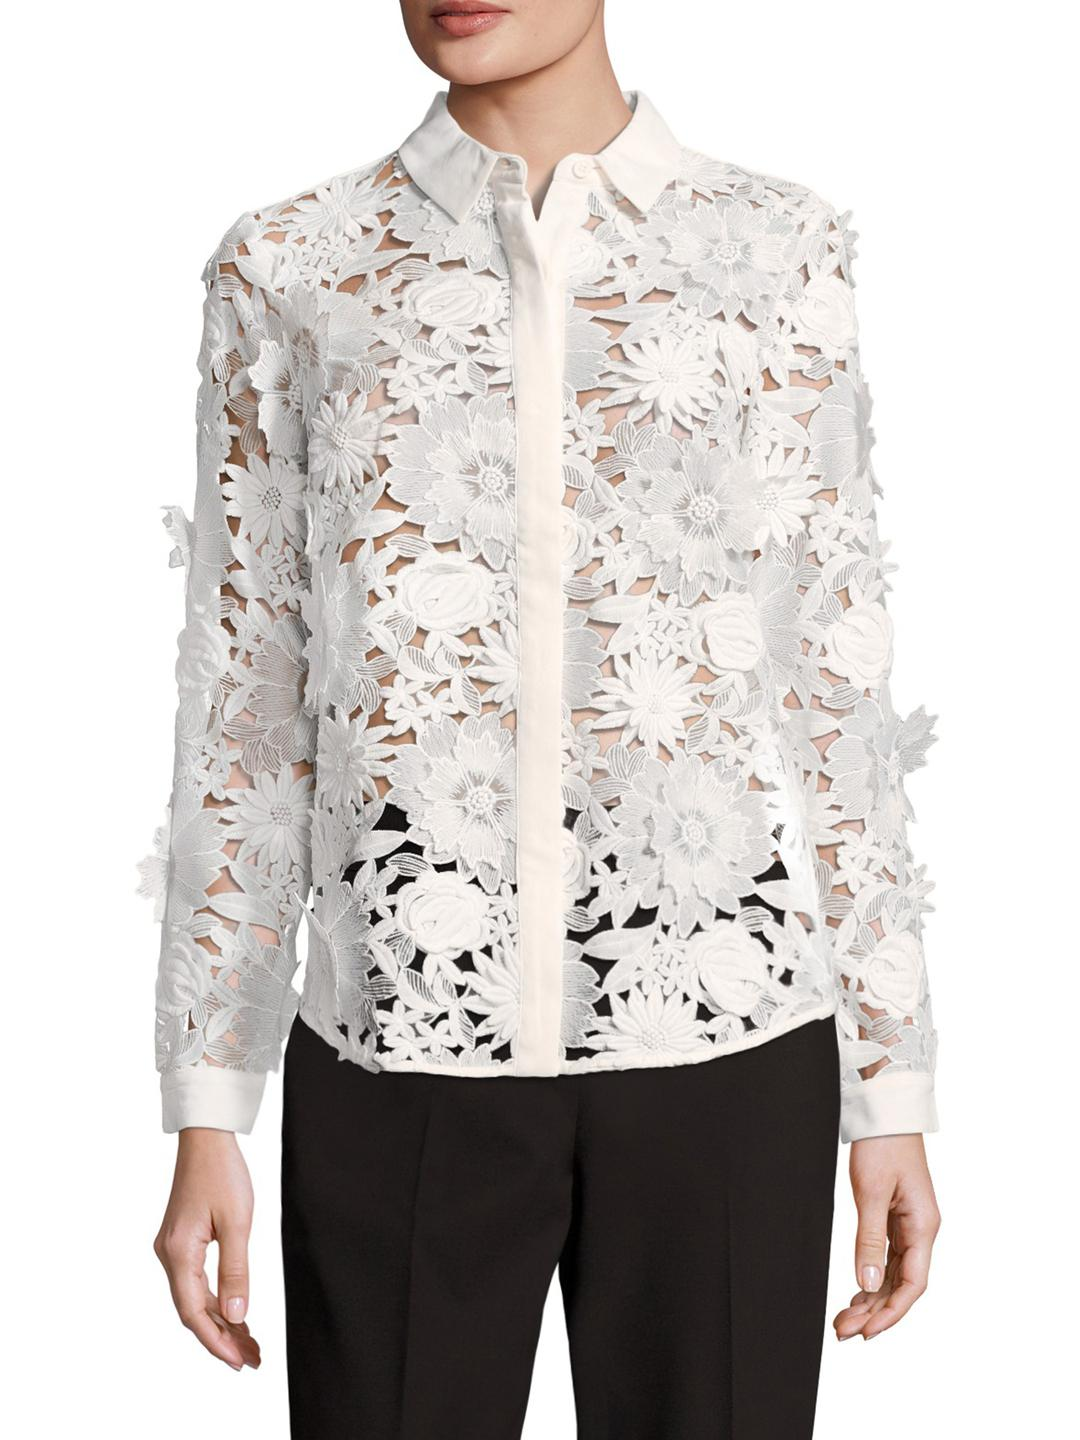 aabc1697032 French Connection Manzoni Lace Shirt in White - Lyst